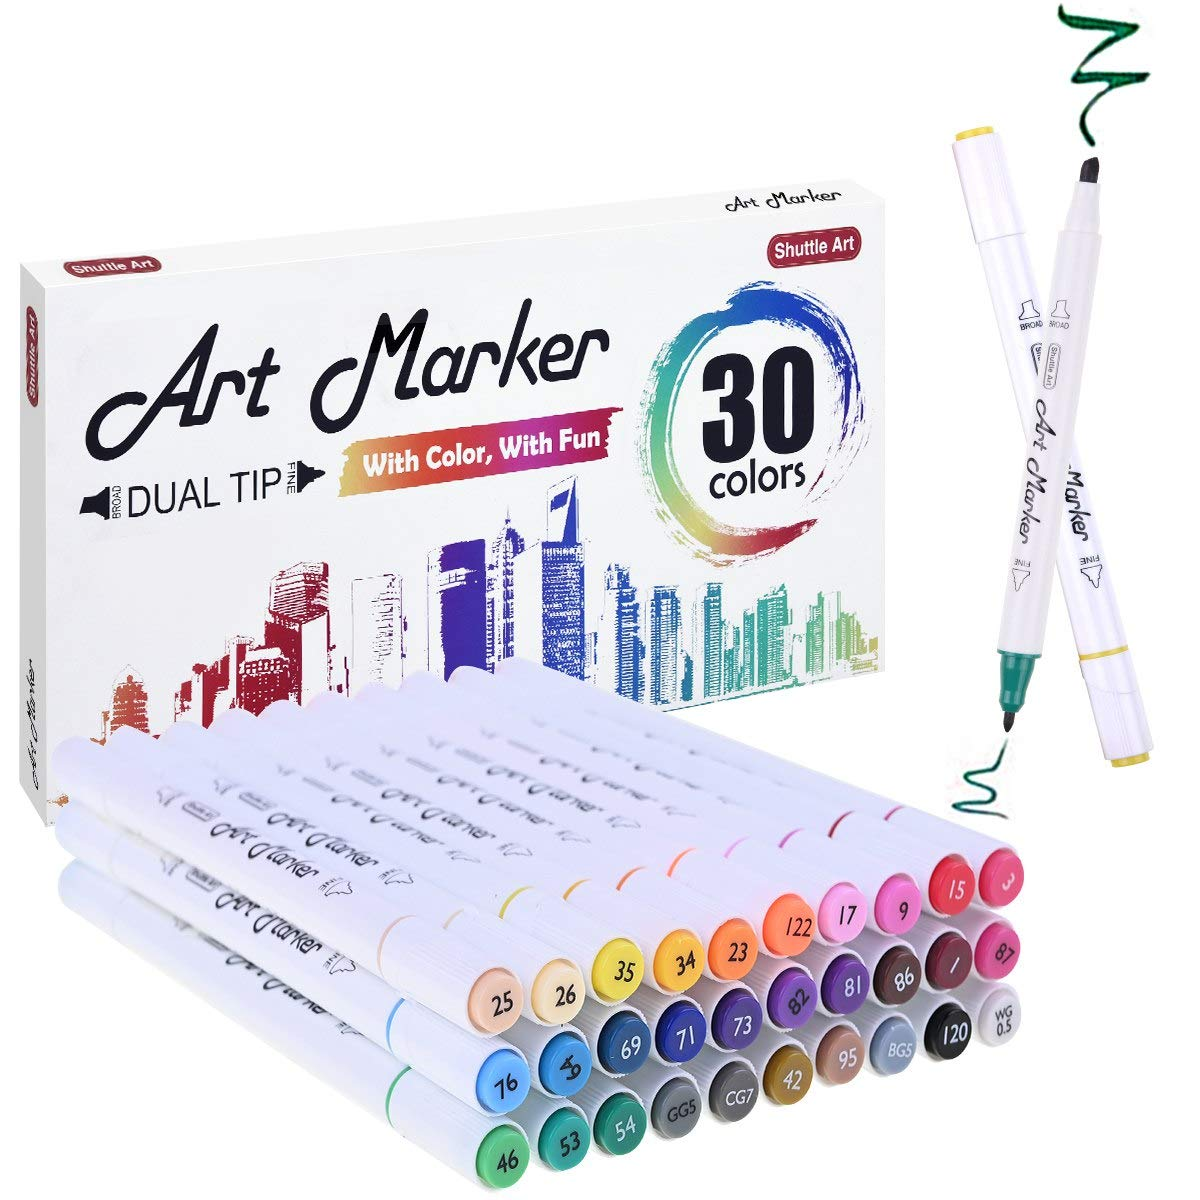 30 Colors Dual Tip Alcohol Based Art Markers,Shuttle Art Alcohol Marker Pens Perfect for Kids Adult Coloring Books Sketching and Card Making by Shuttle Art